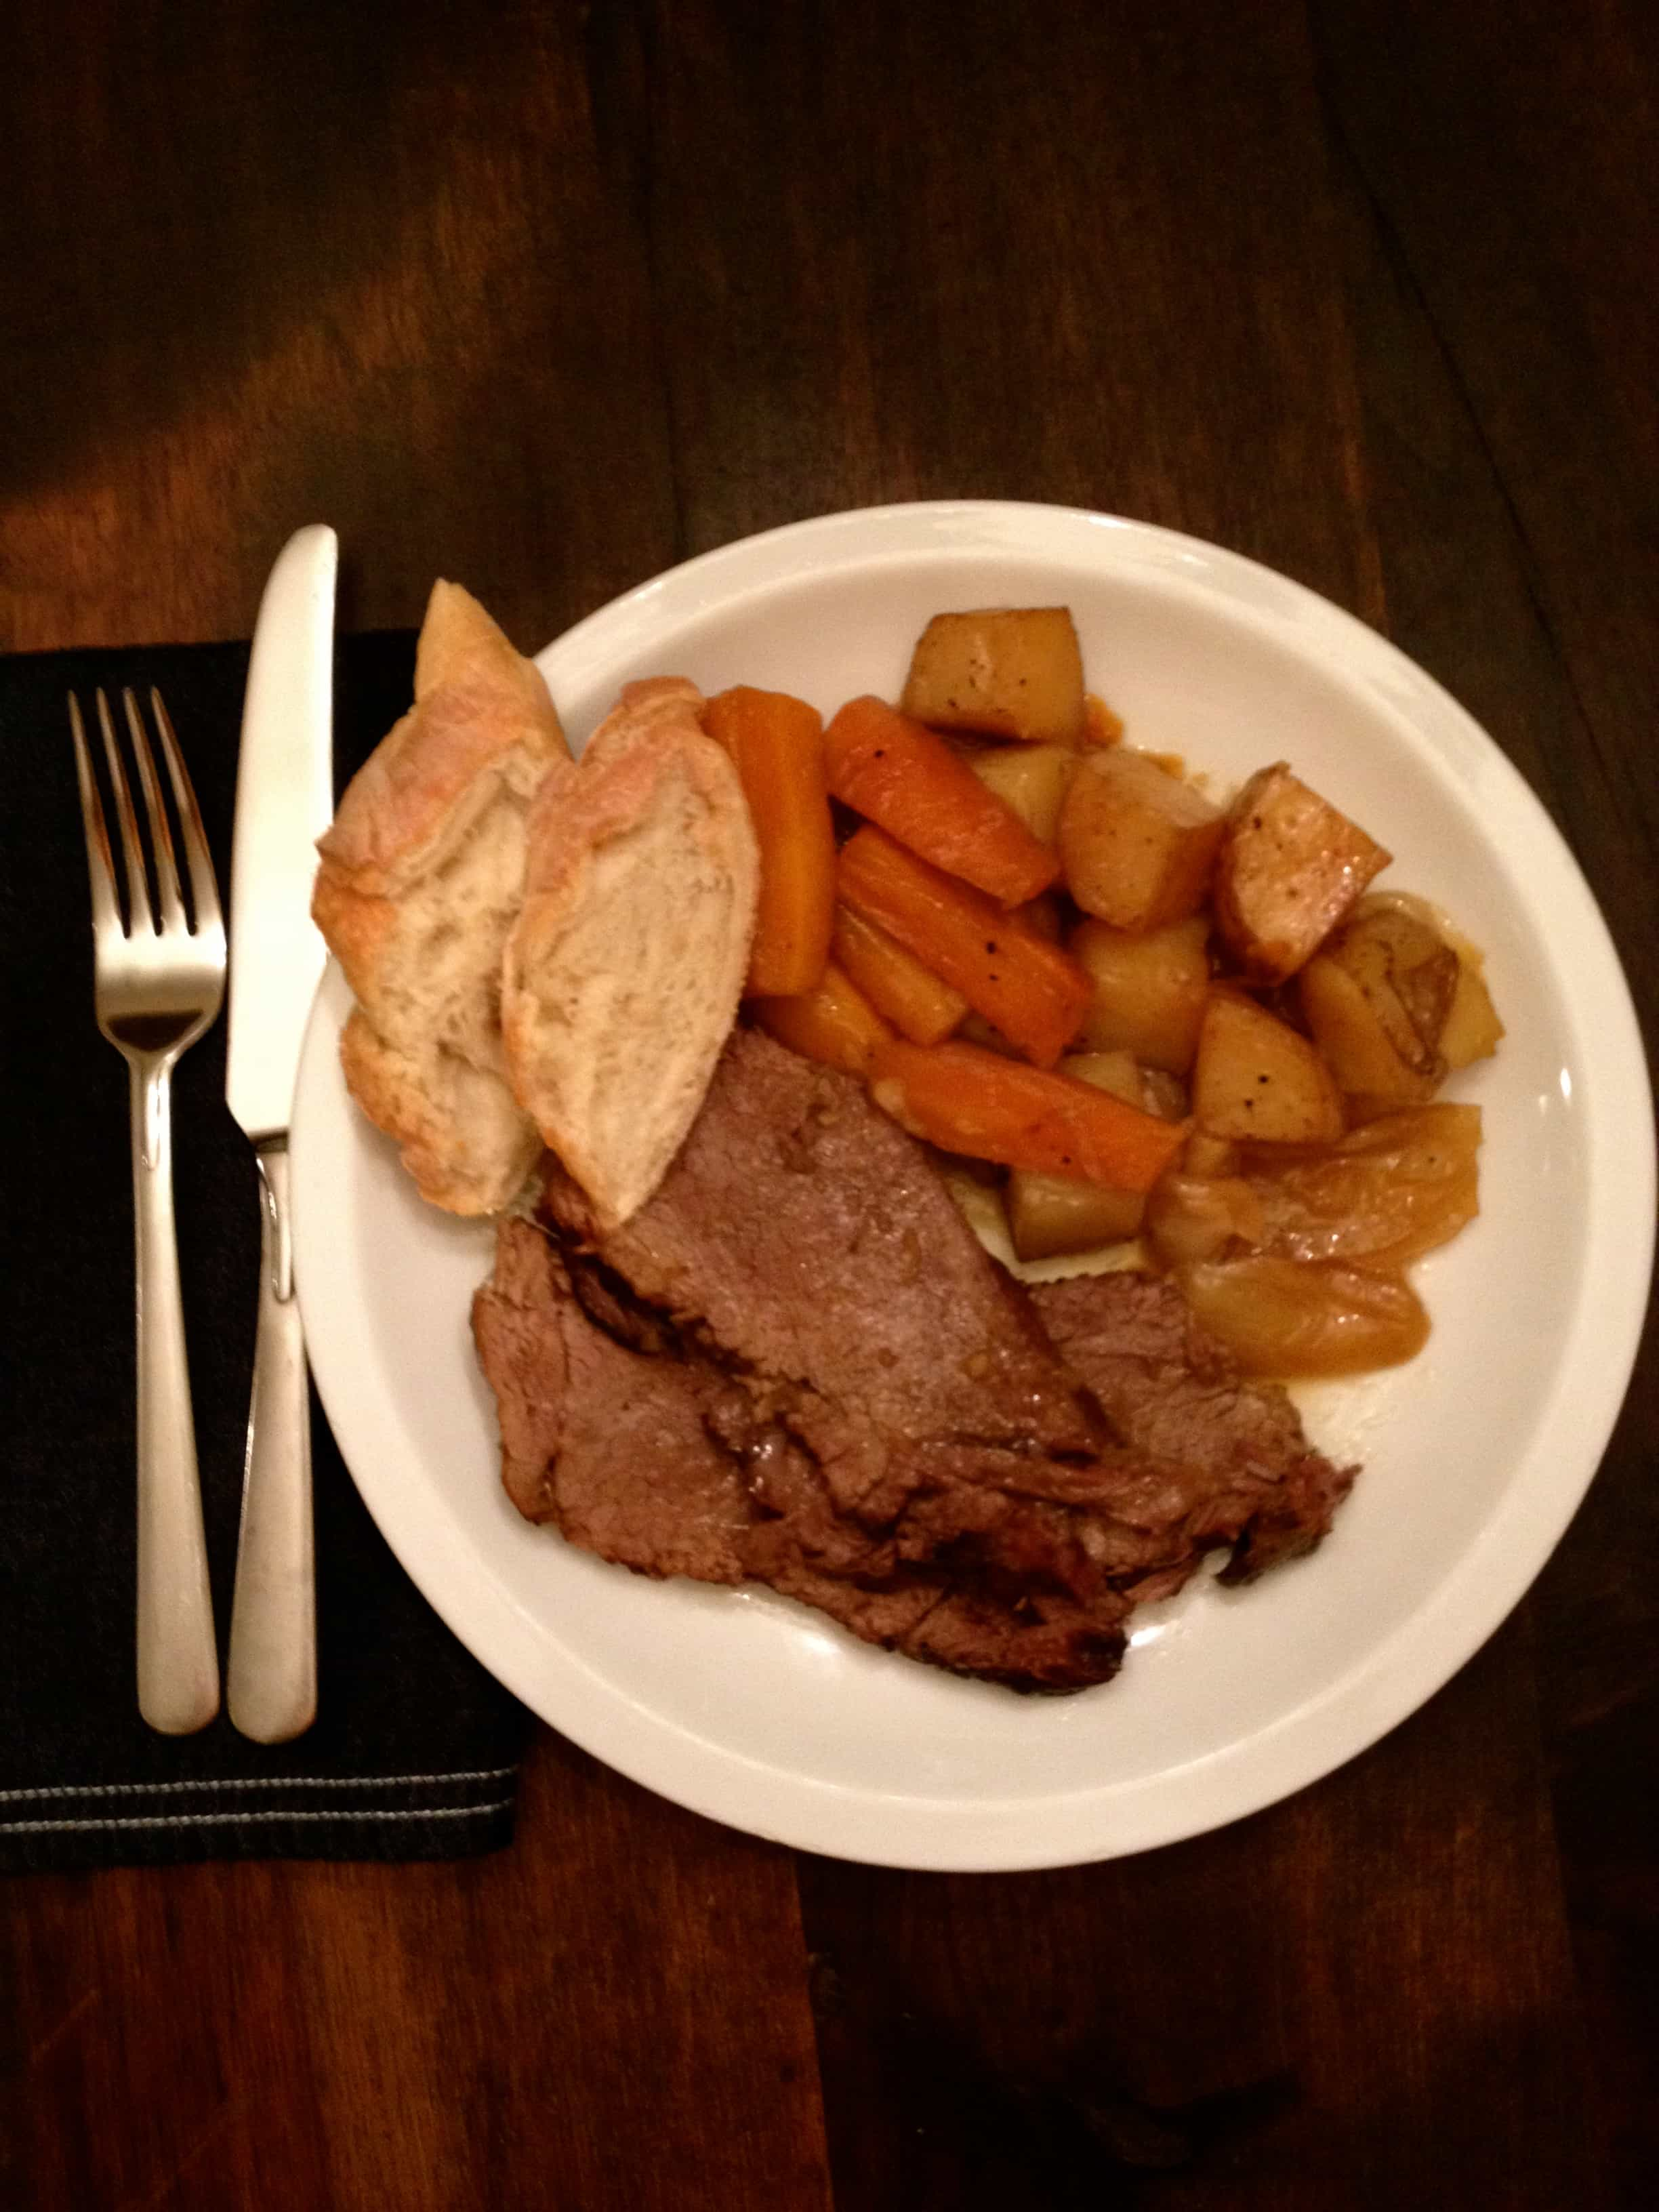 Photo of The Easiest And Best Pot Roast Ever cooked on plate with carrots, potatoes, and french bread